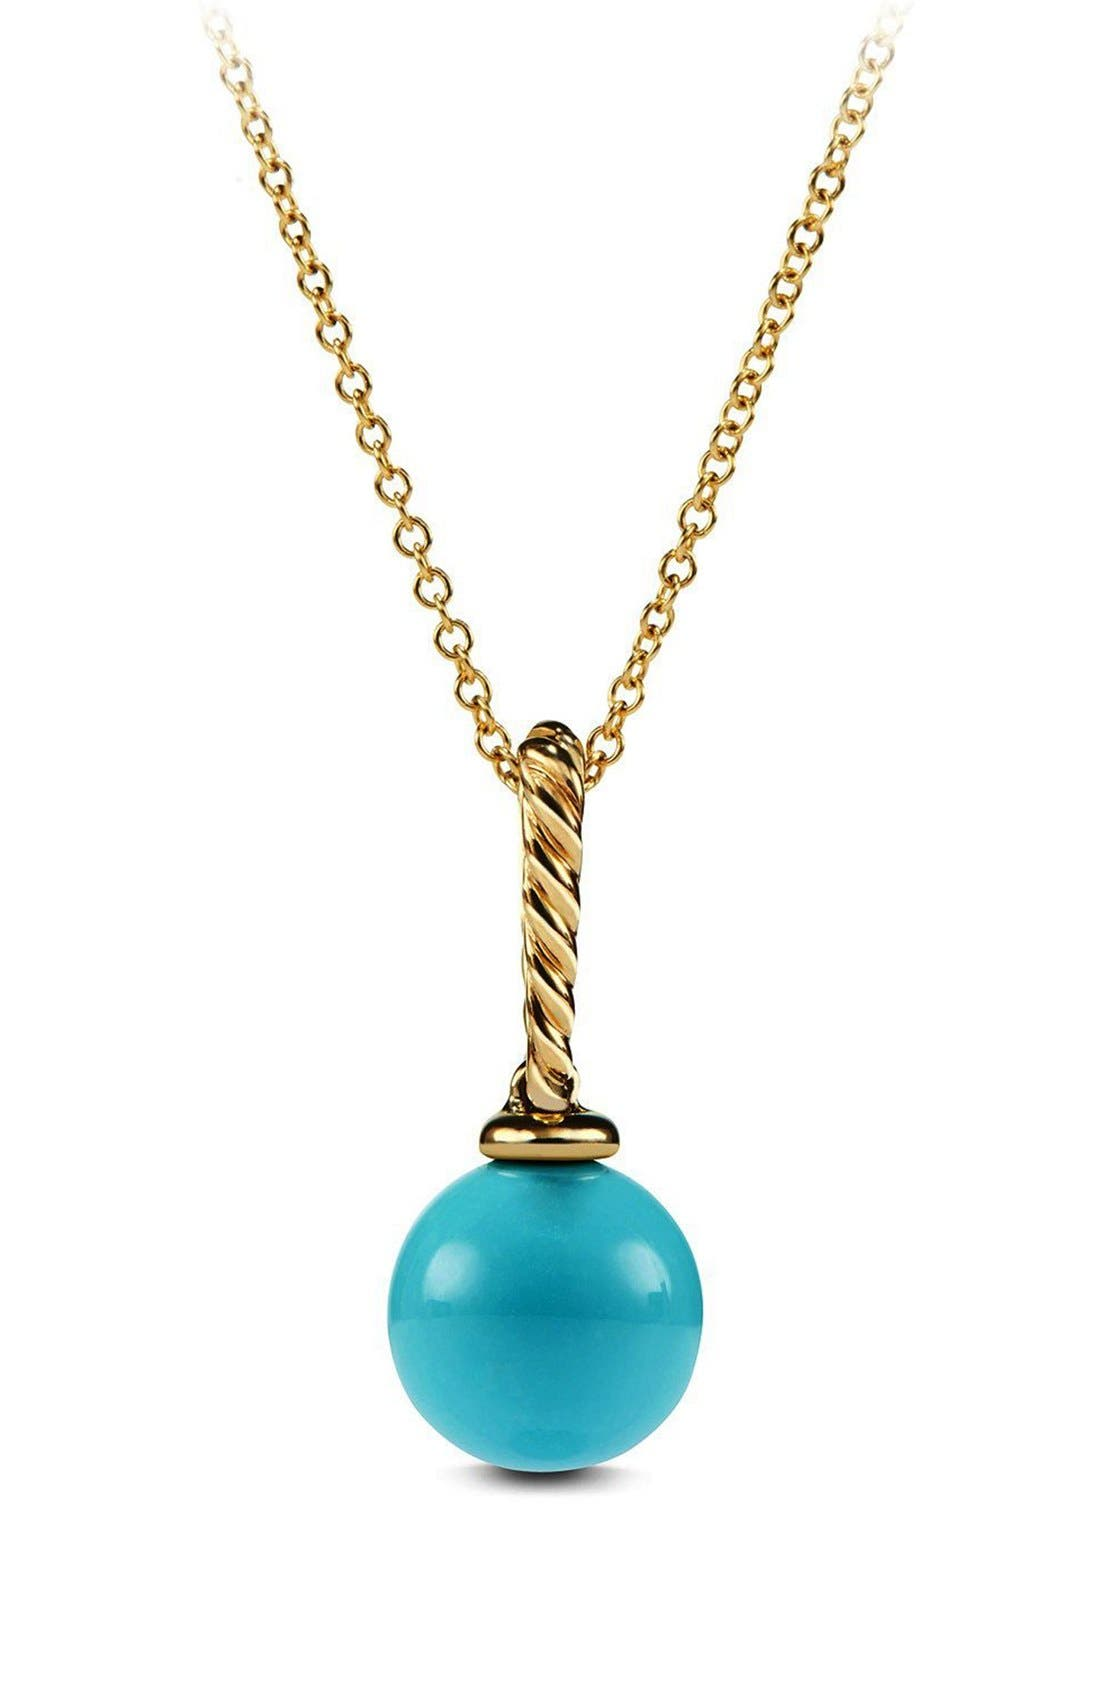 David Yurman 'Solari' Pendant Necklace in 18K Gold